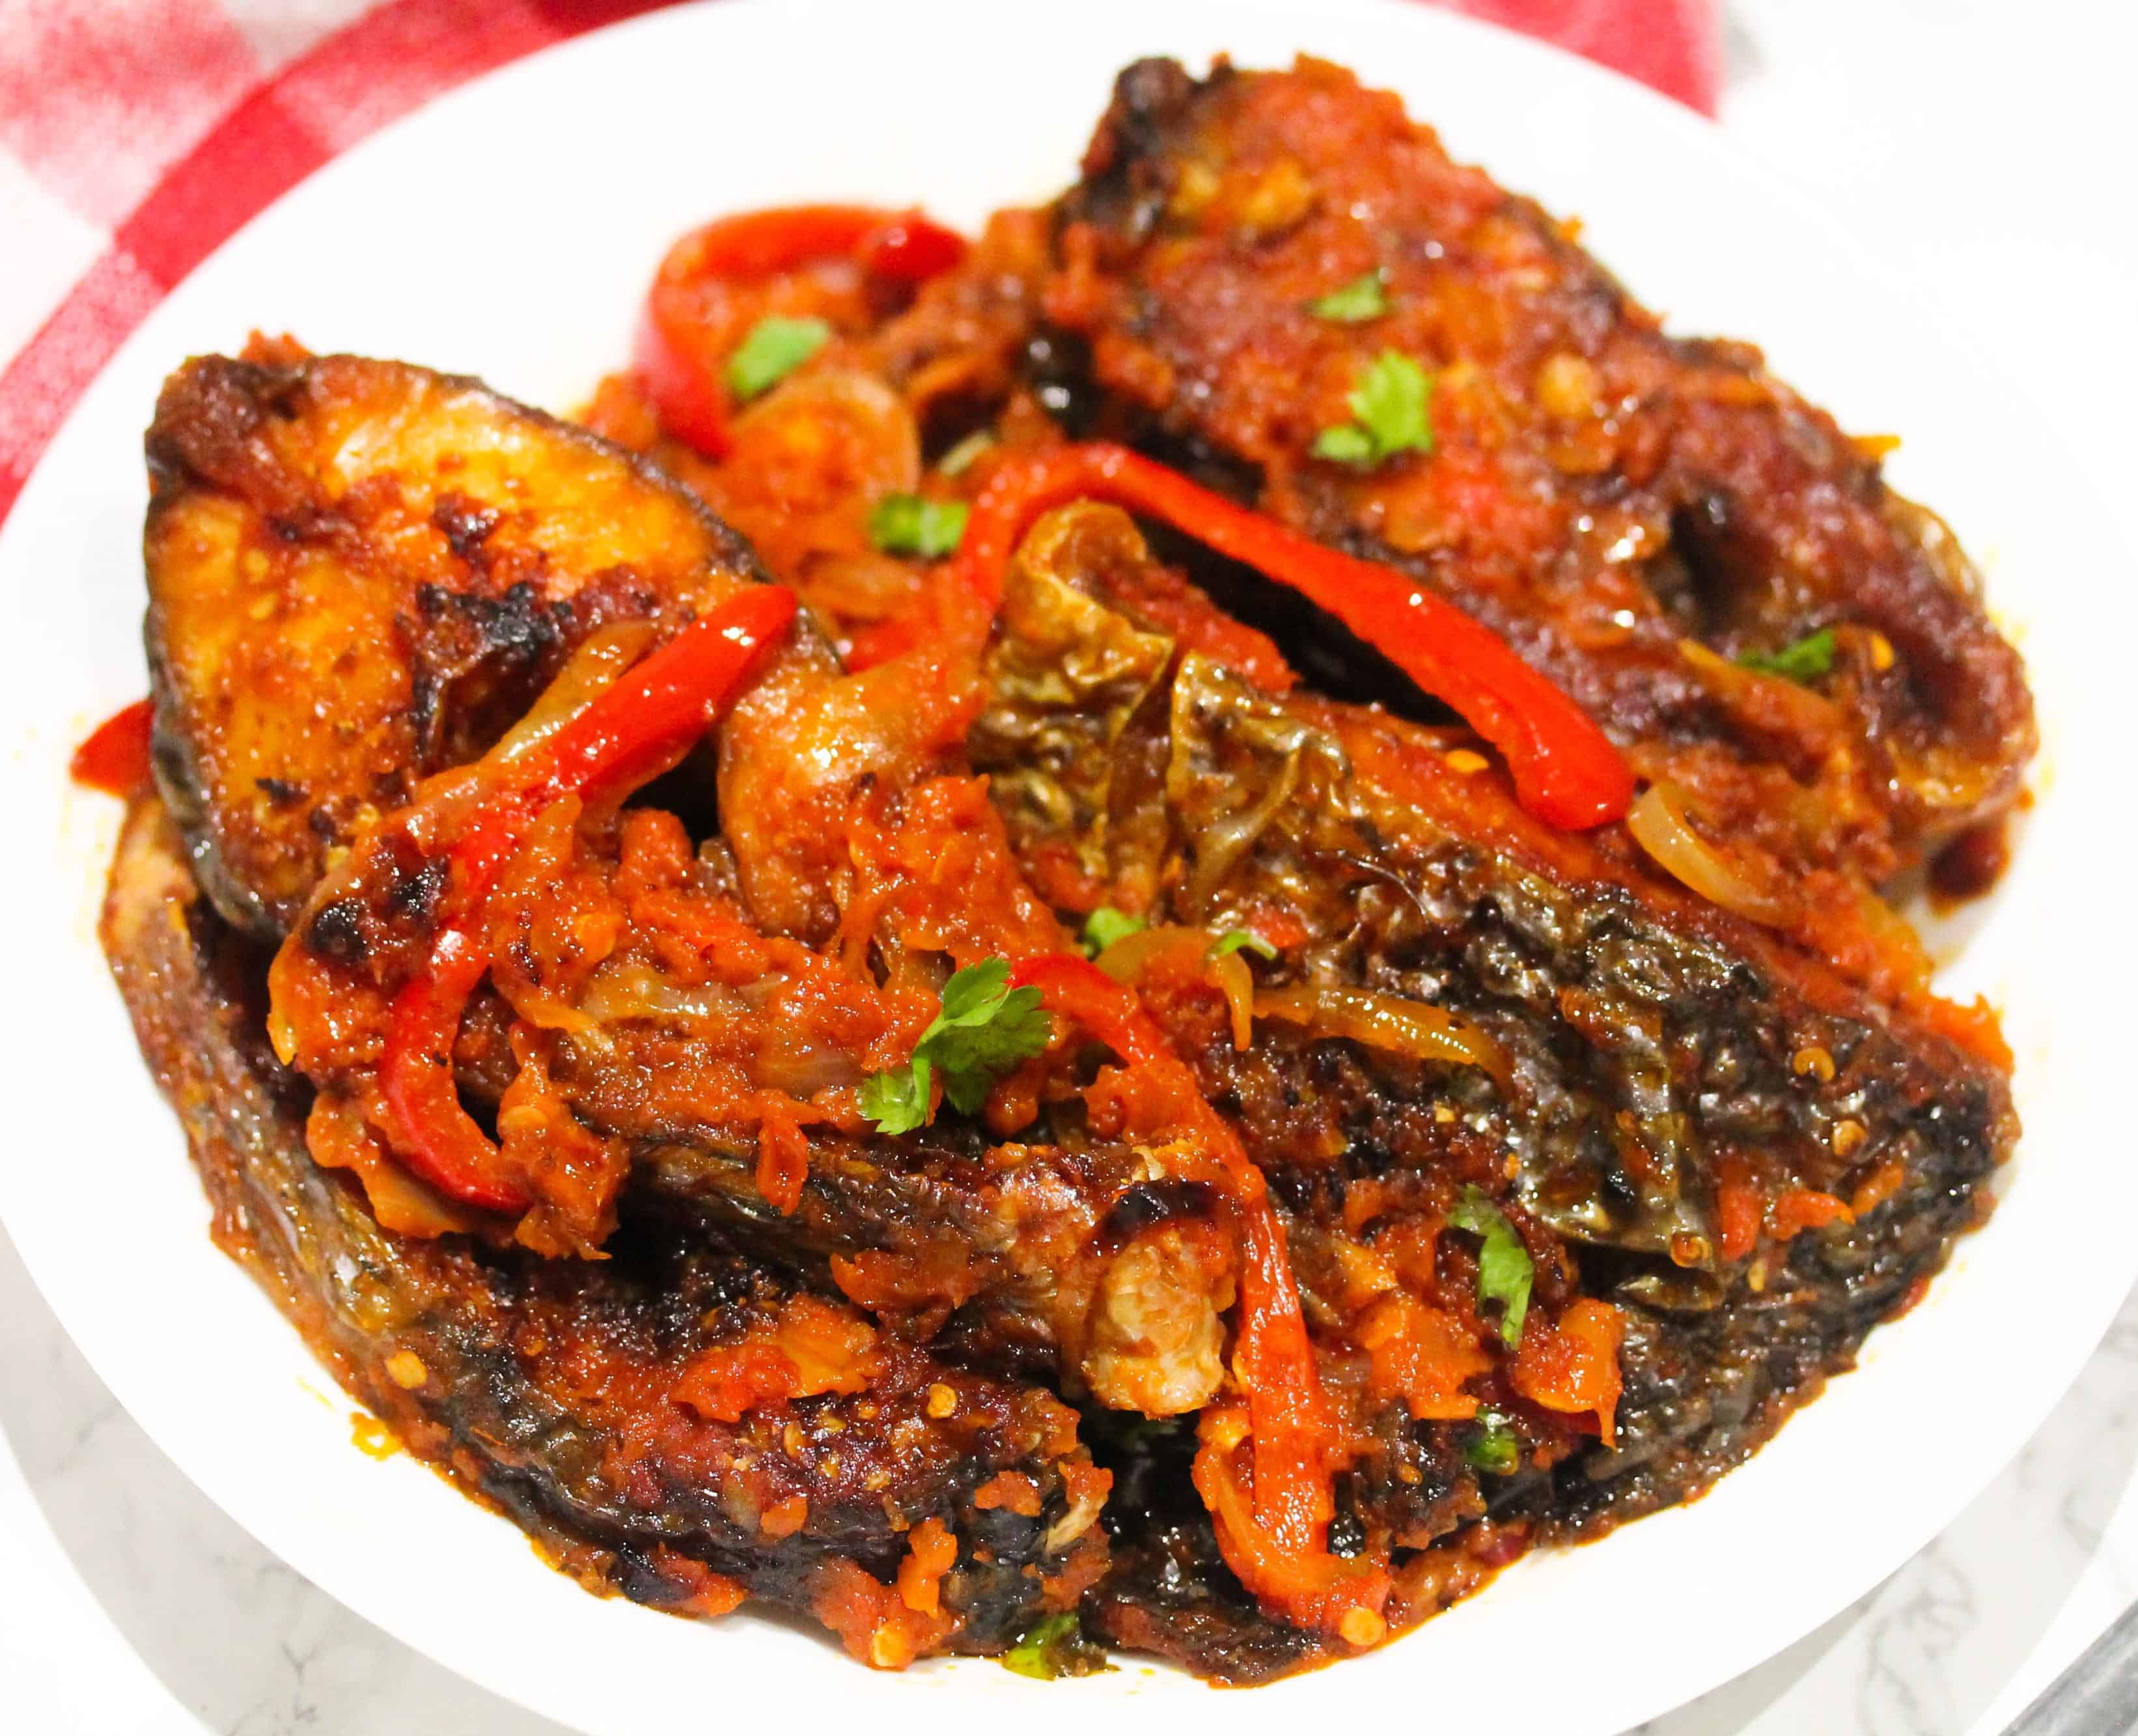 This spicy grilled tilapia recipe is filled with flavour! It includes, tomatoes, red bell peppers, onions and scotch bonnets. Serve as a side